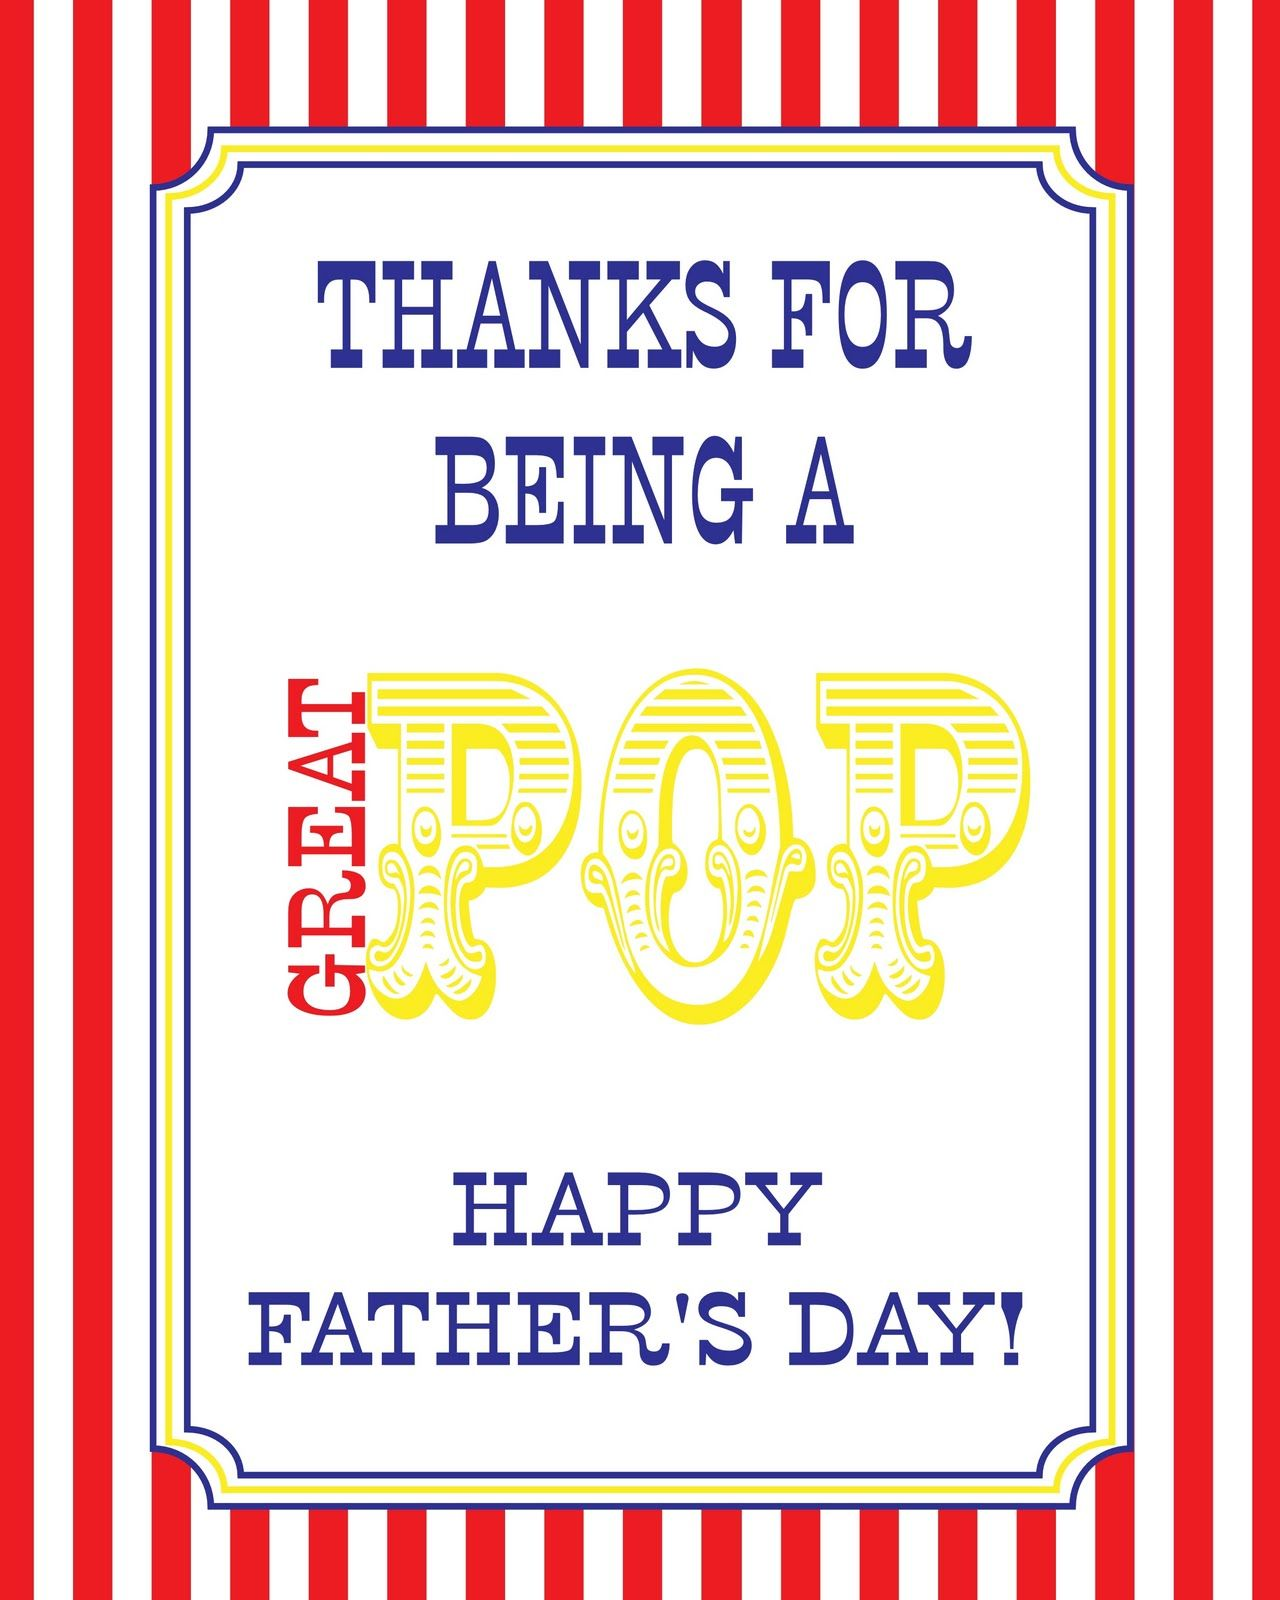 Thanks for being a great pop free fathers day popcorn party free fathers day popcorn party pronofoot35fo Choice Image